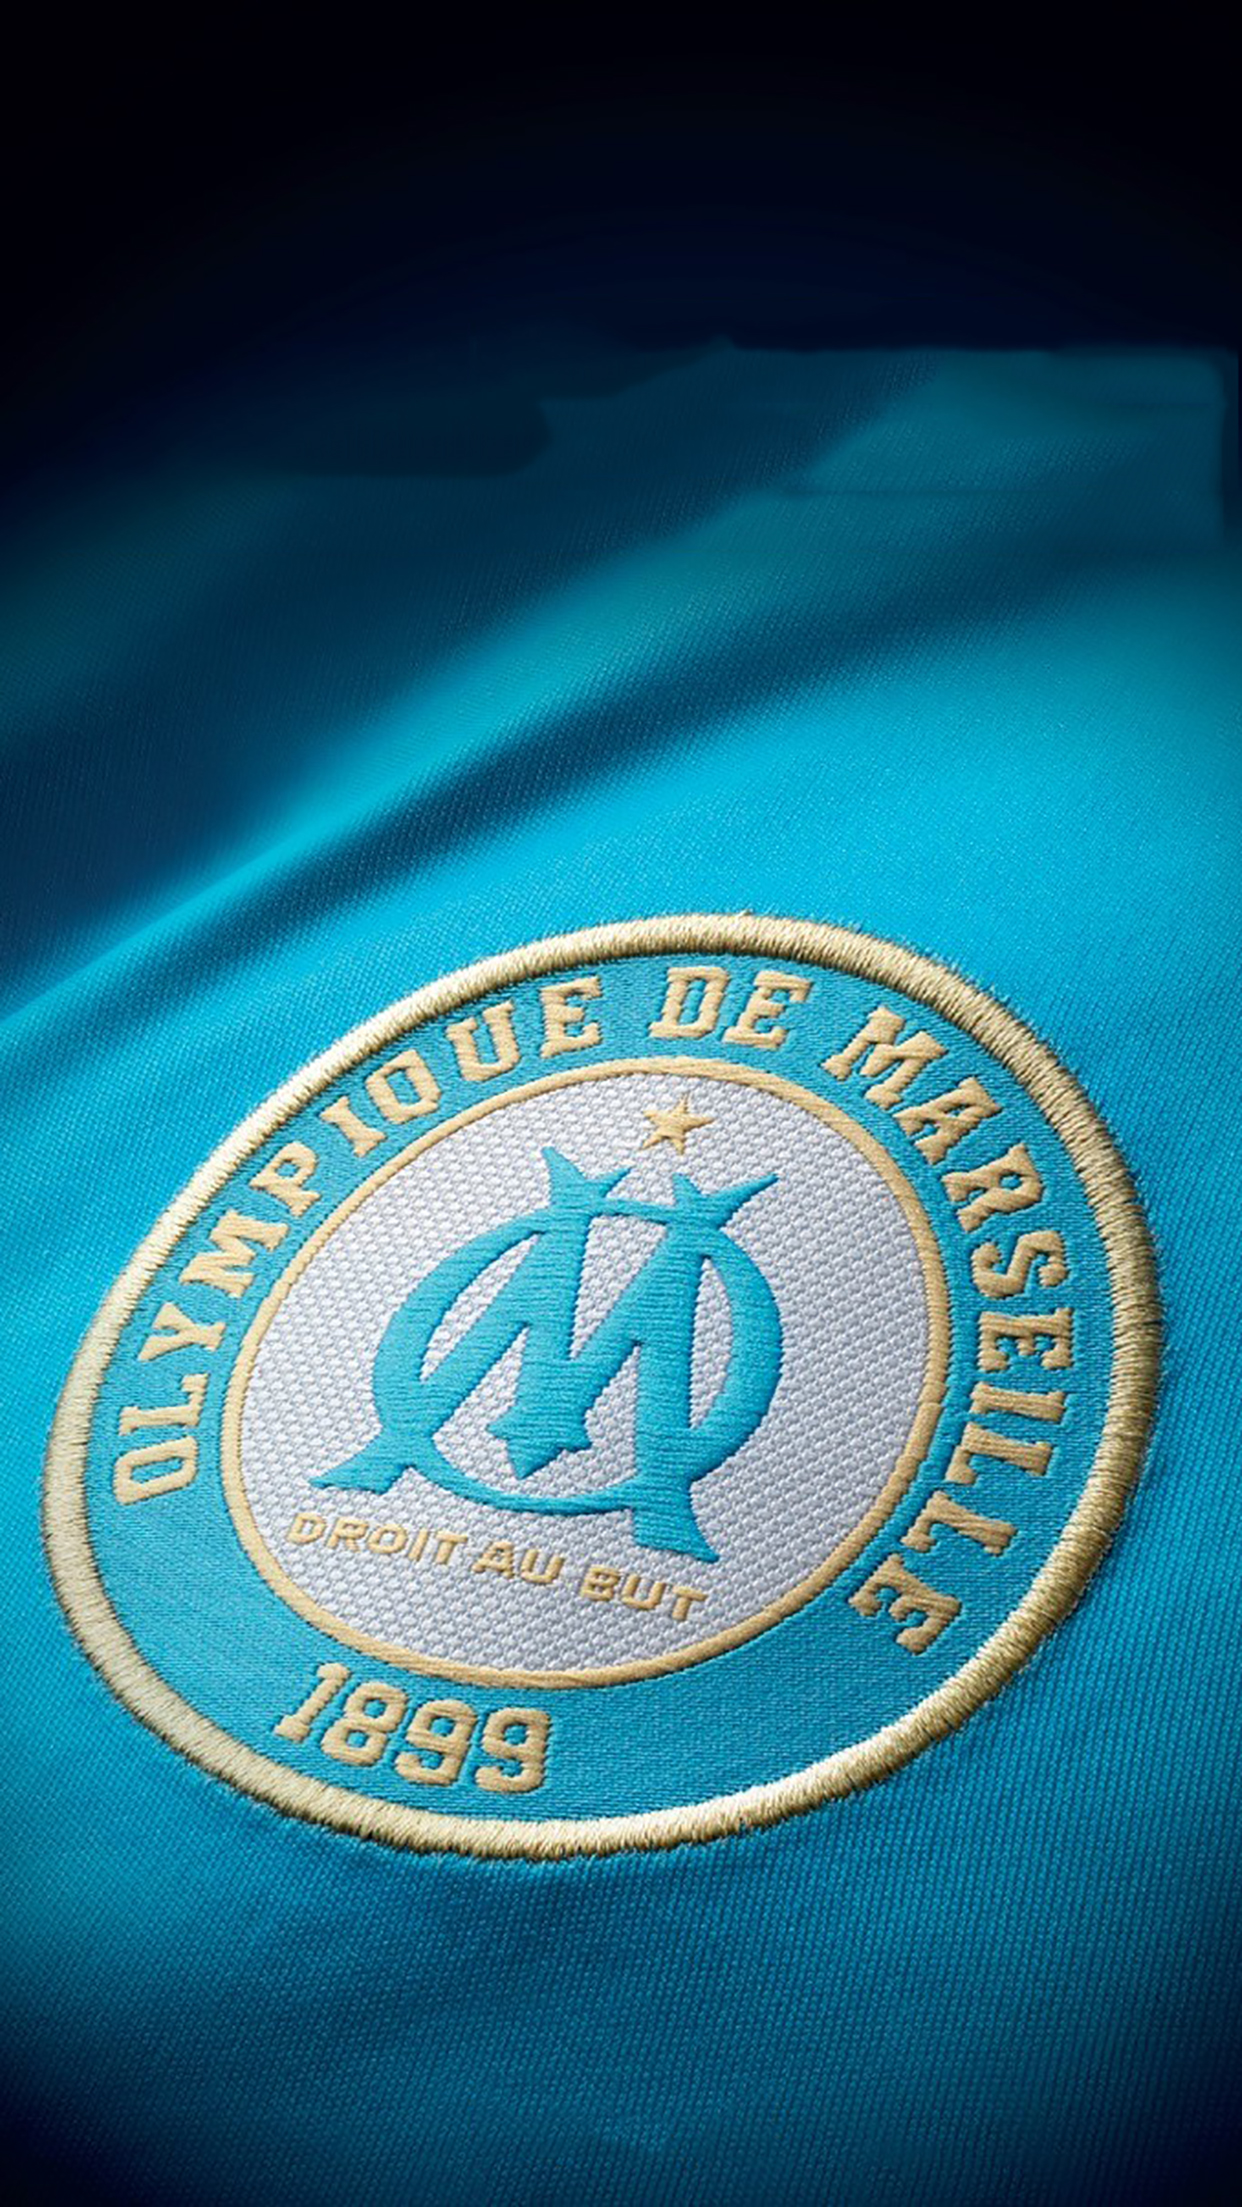 Cars 2 Wallpaper For Phone Olympique De Marseille Logo 2 Wallpaper For Iphone X 8